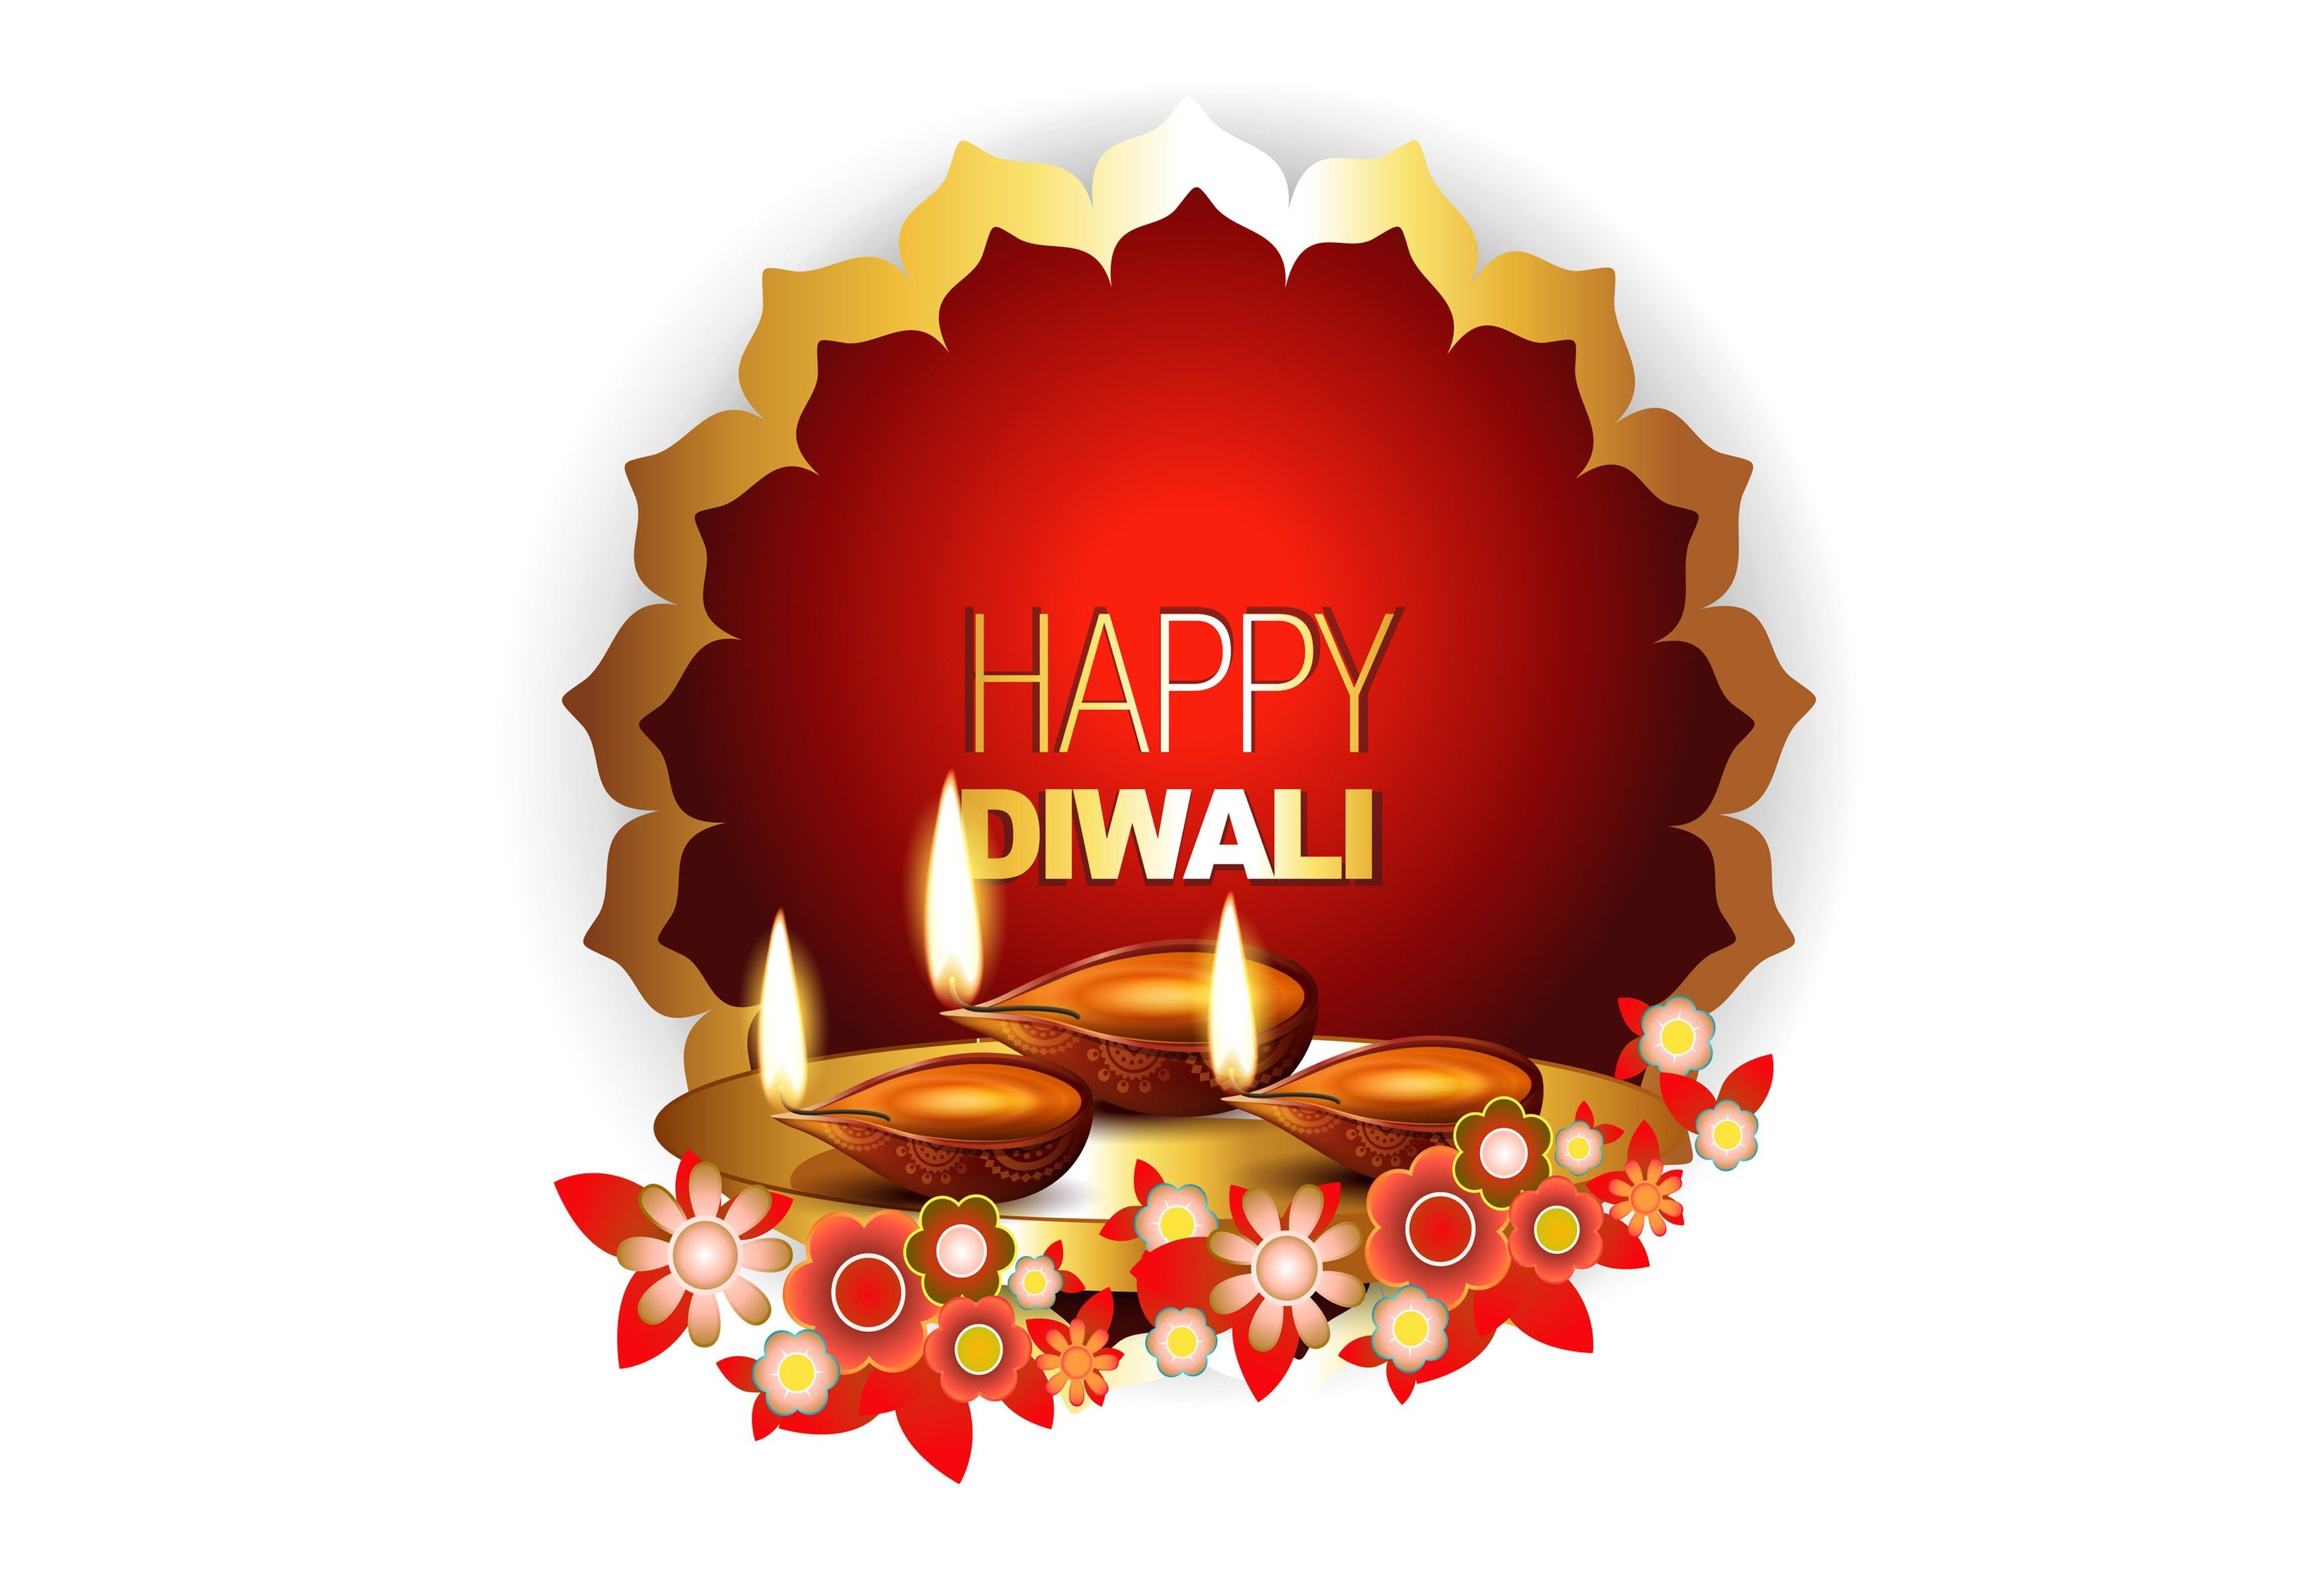 Happy diwali new sms images and greeting cards 2015 download free happy diwali new sms images and greeting cards 2015 download free http kristyandbryce Images